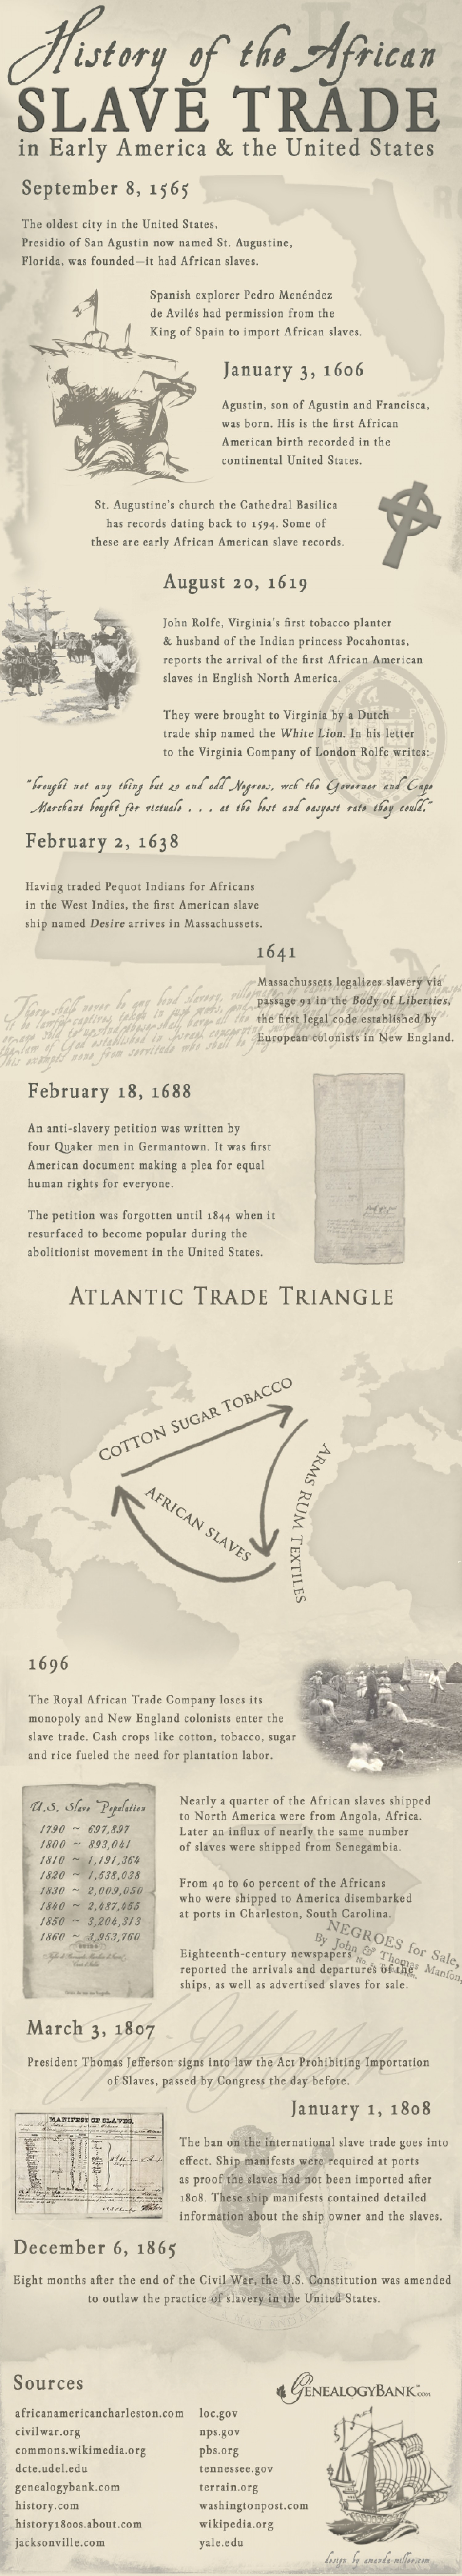 history-of-the-african-slave-trade-in-america_5315020f1fe10_w1500